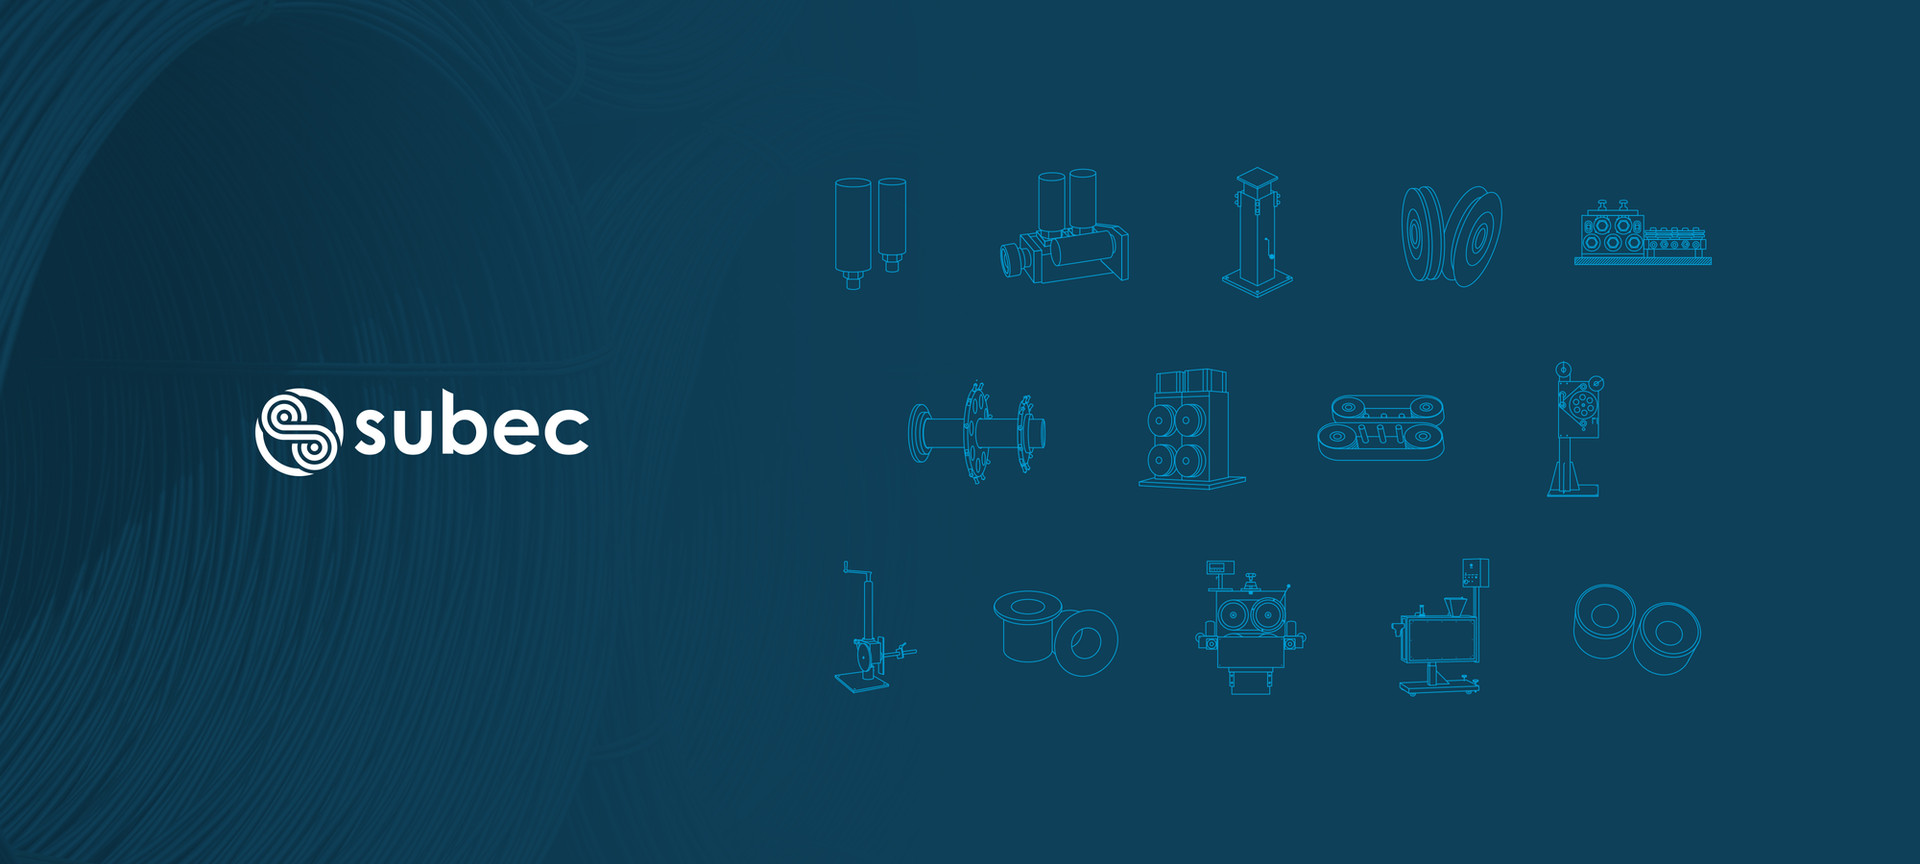 Visual identity and icon set for Subec